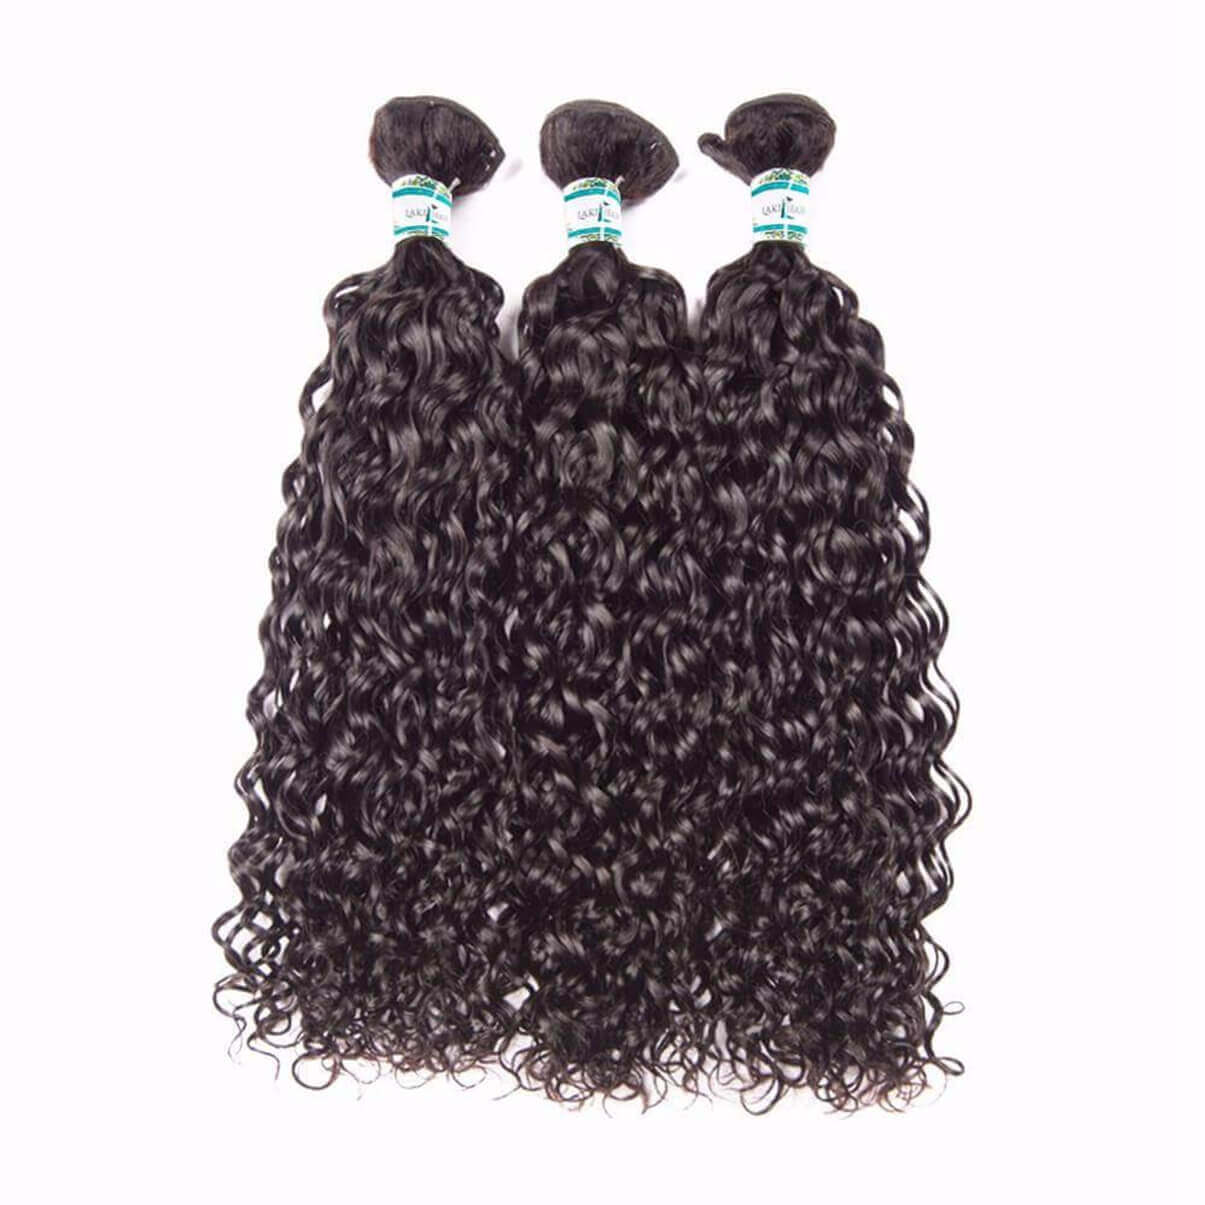 Lakihair 8A Brazilian Water Wave 3 Bundles With Lace Closure 4x4 Virgin Human Hair Bundles